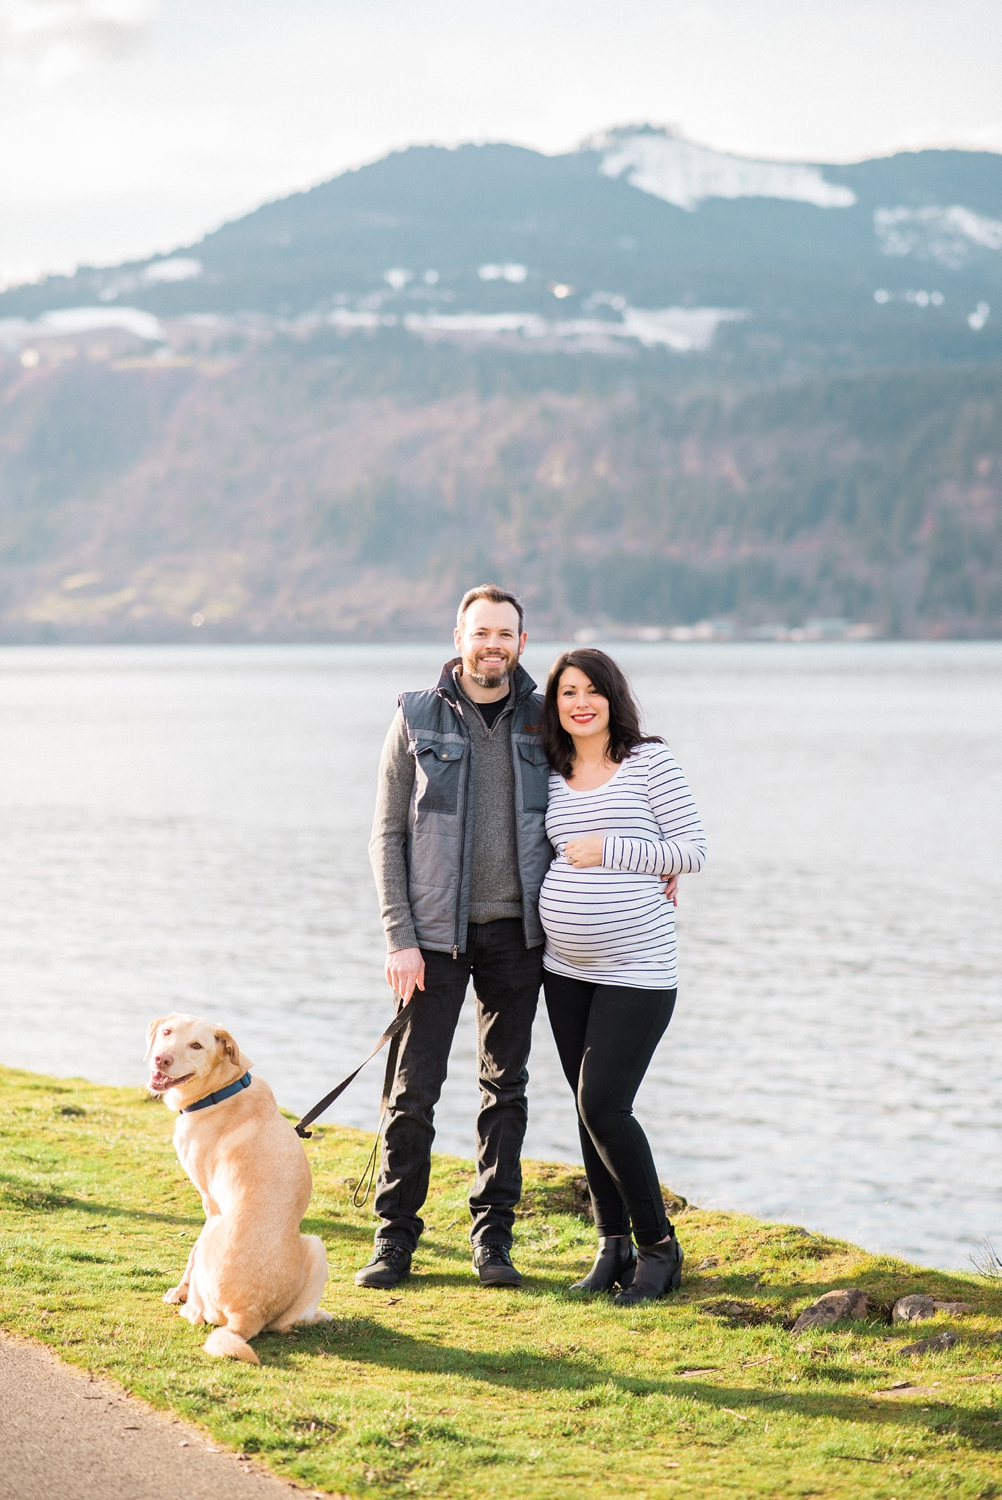 hood-river-maternity-photos-with-dog-columbia-river-gorge-shelley-marie-photo-021_cr.jpg